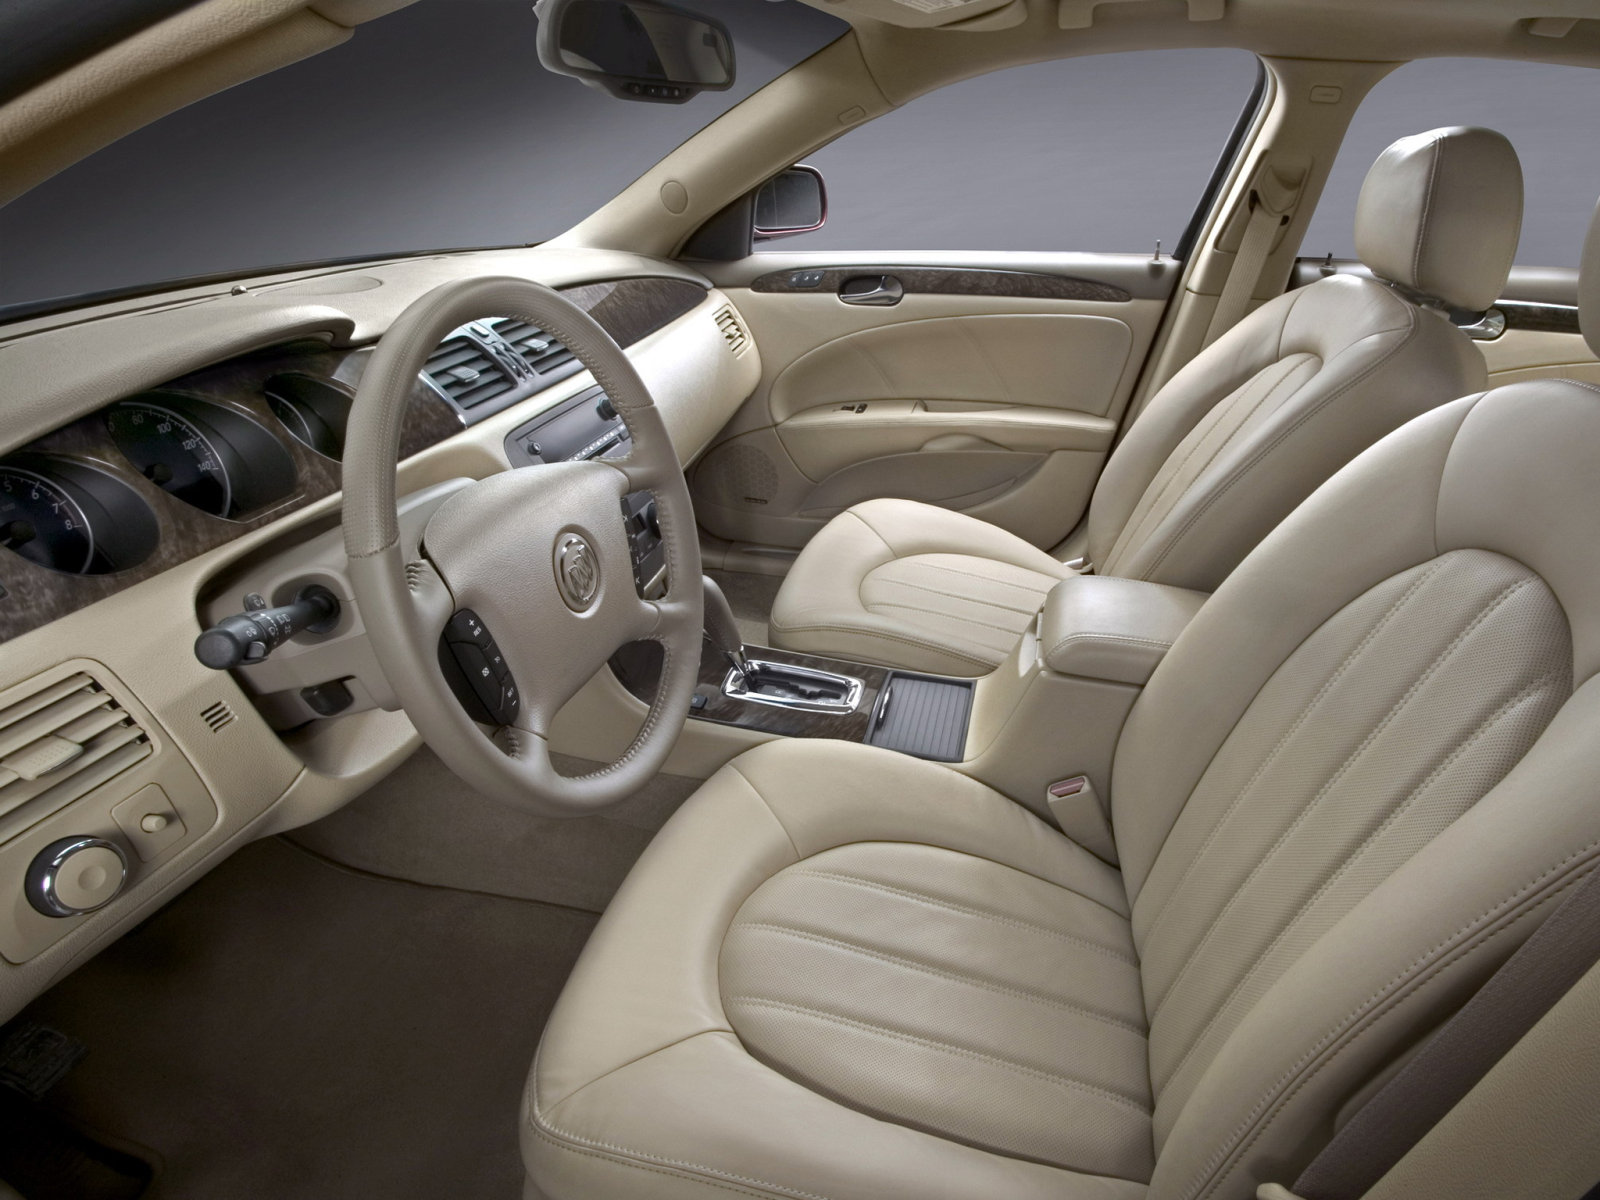 Buick Lucerne Reviews: Research New & Used Models Motor Buick lucerne interior photos